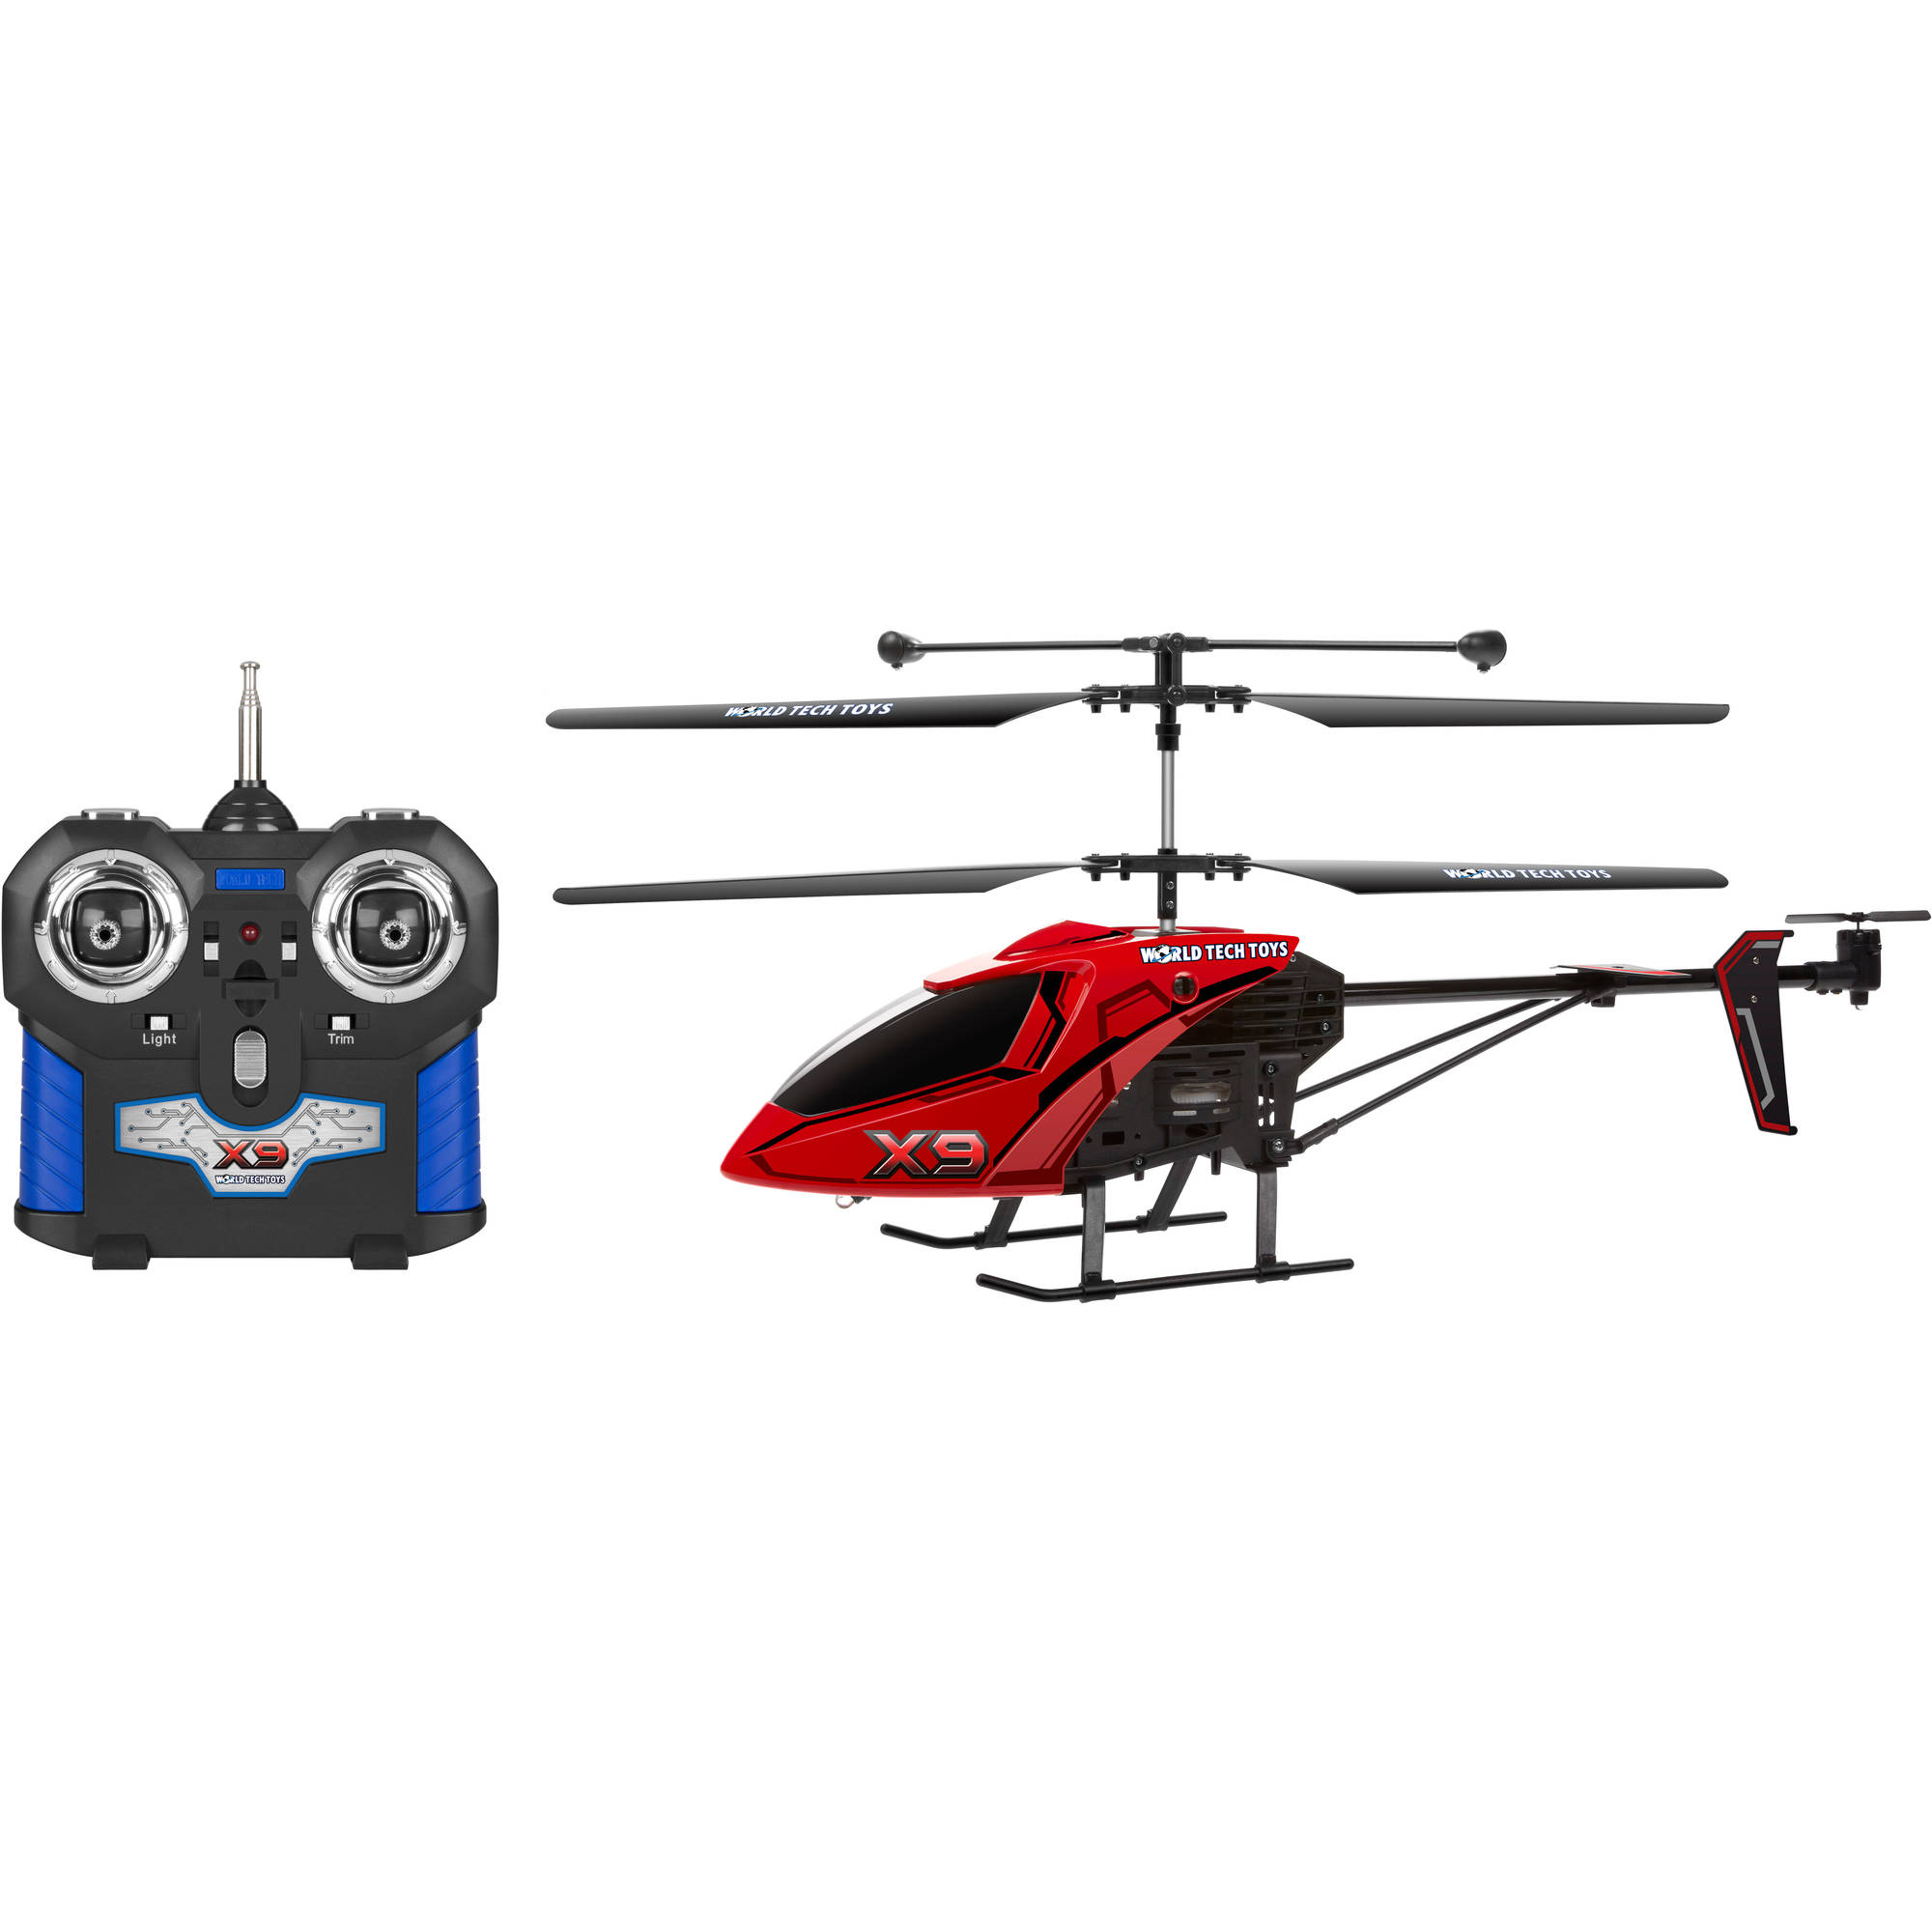 Toy Helicopters